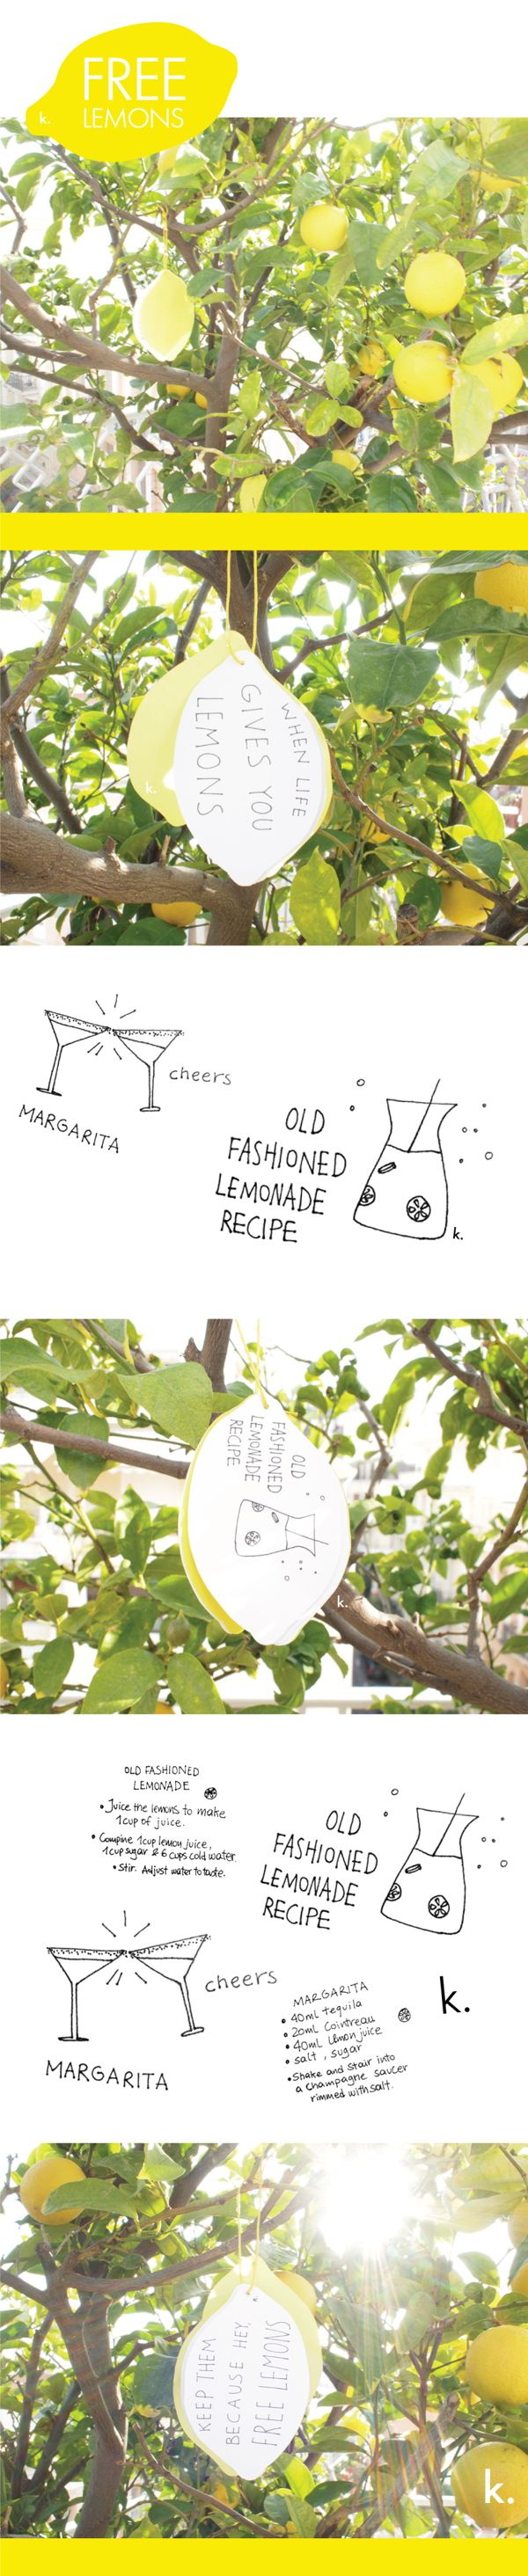 Free Lemons by Katerina Vlachava, via Behance